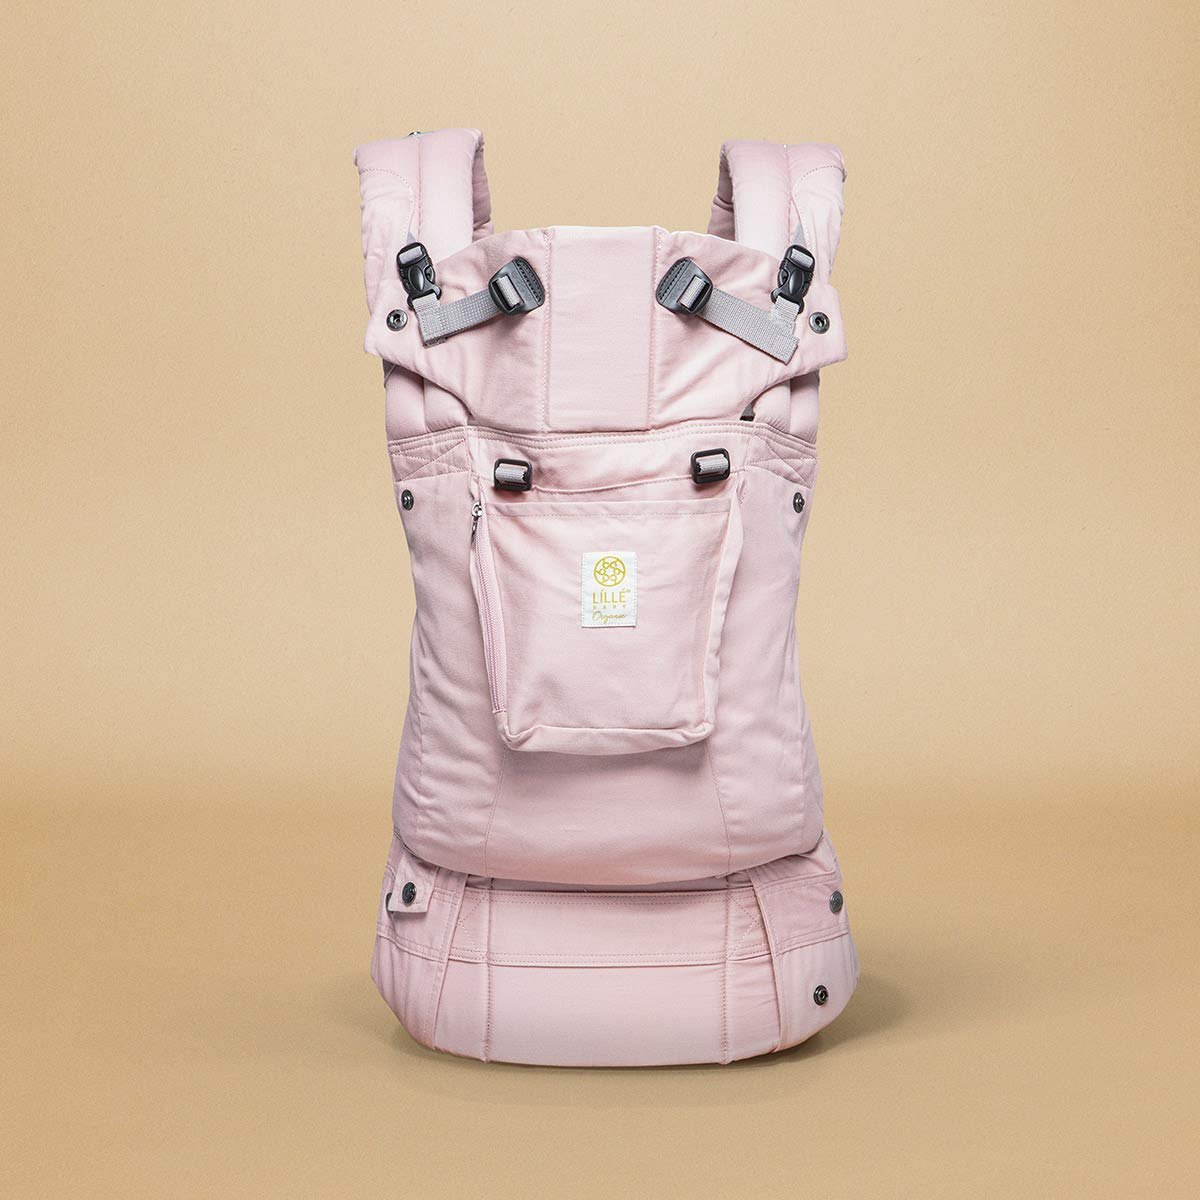 Organic Cotton Blushing Pink L/ÍLL/Ébaby Complete Organi-Touch SIX-Position Ergonomic Baby /& Child Carrier